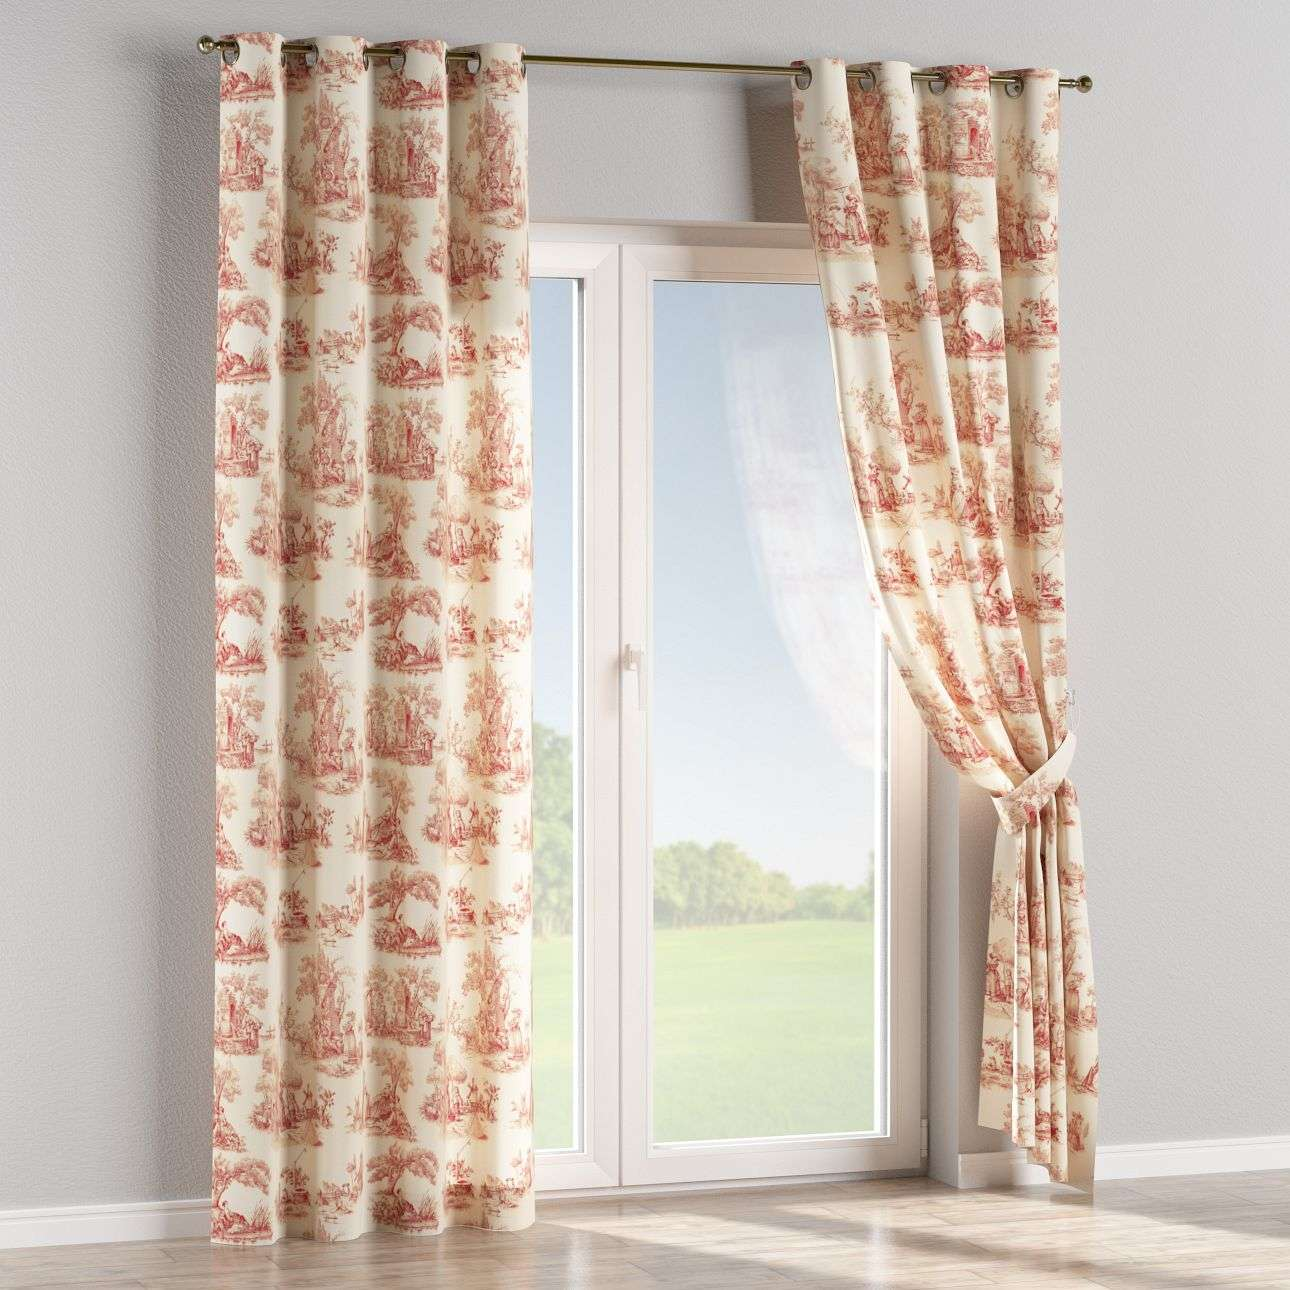 Eyelet curtains 130 x 260 cm (51 x 102 inch) in collection Avinon, fabric: 132-15